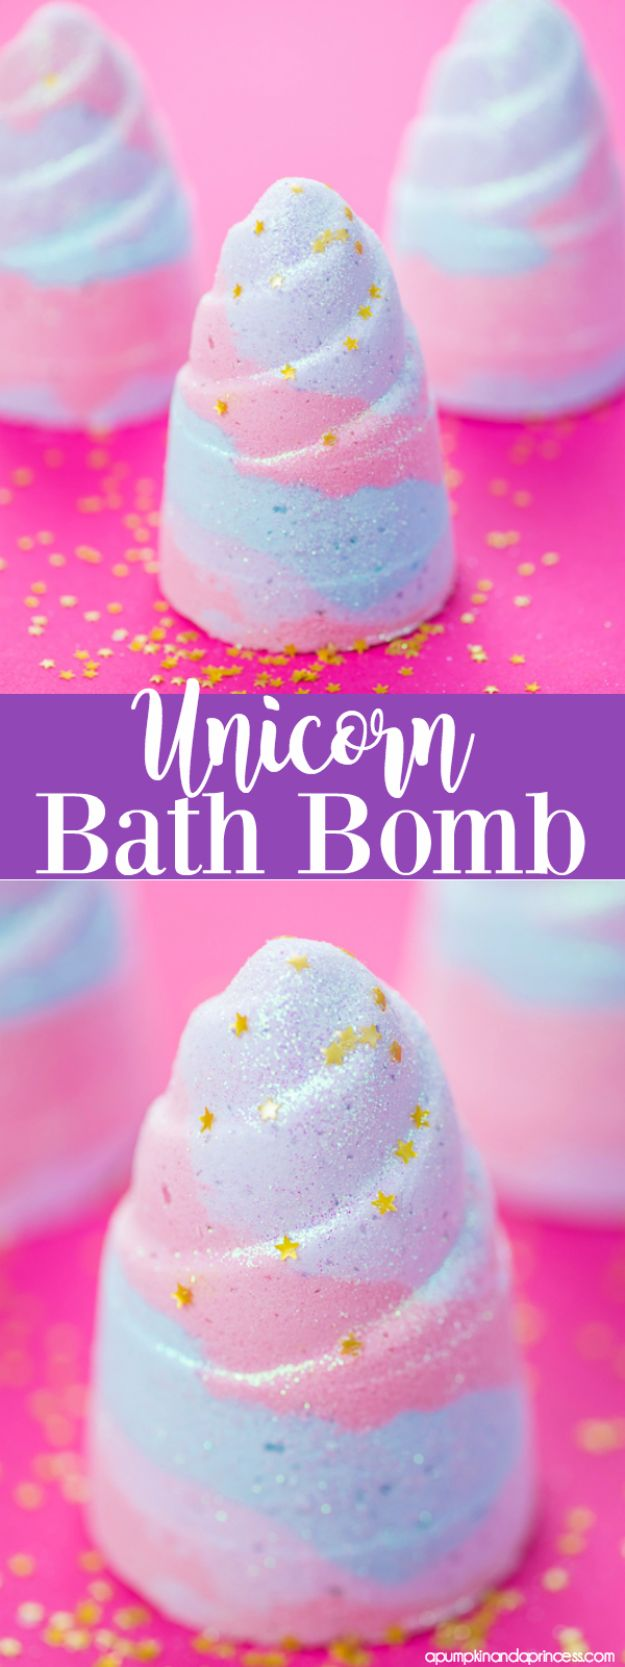 DIY Ideas With Unicorns - DIY Unicorn Bath Bomb - Cute and Easy DIY Projects for Unicorn Lovers - Wall and Home Decor Projects, Things To Make and Sell on Etsy - Quick Gifts to Make for Friends and Family - Homemade No Sew Projects and Pillows - Fun Jewelry, Desk Decor Cool Clothes and Accessories http://diyprojectsforteens.com/diy-ideas-unicorns